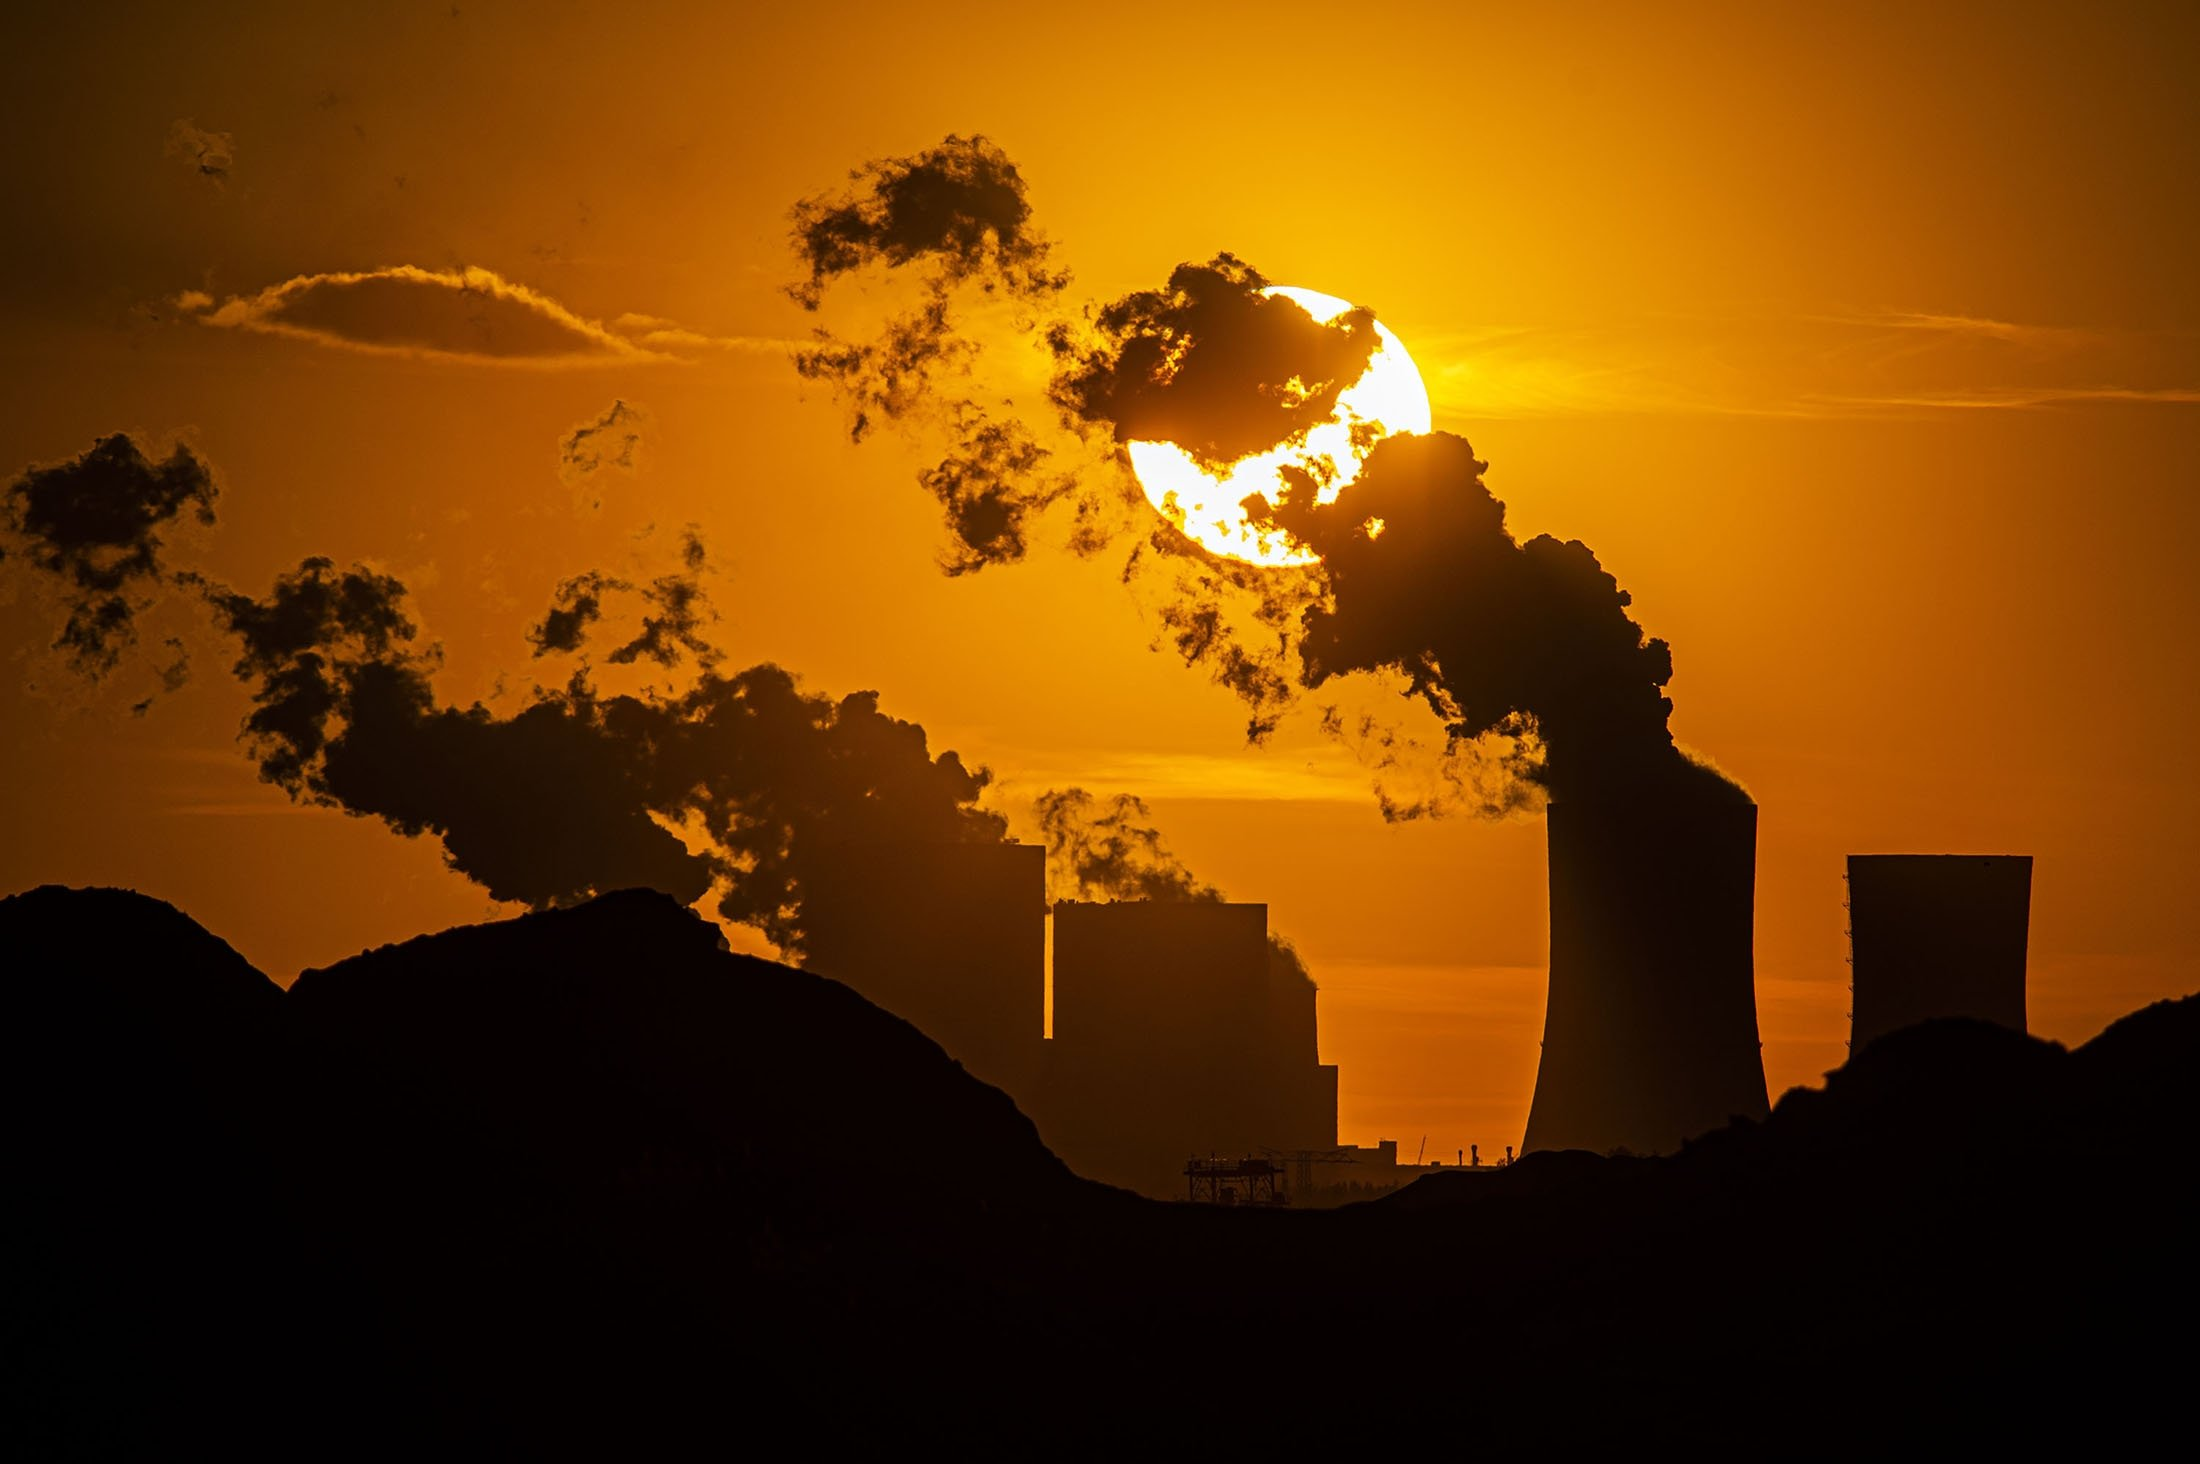 Sun sets behind thecoal-fired power station Boxberg and the open-face mine Reichwalde, Hammerstadt, Germany,April 9, 2020. (Getty Images)